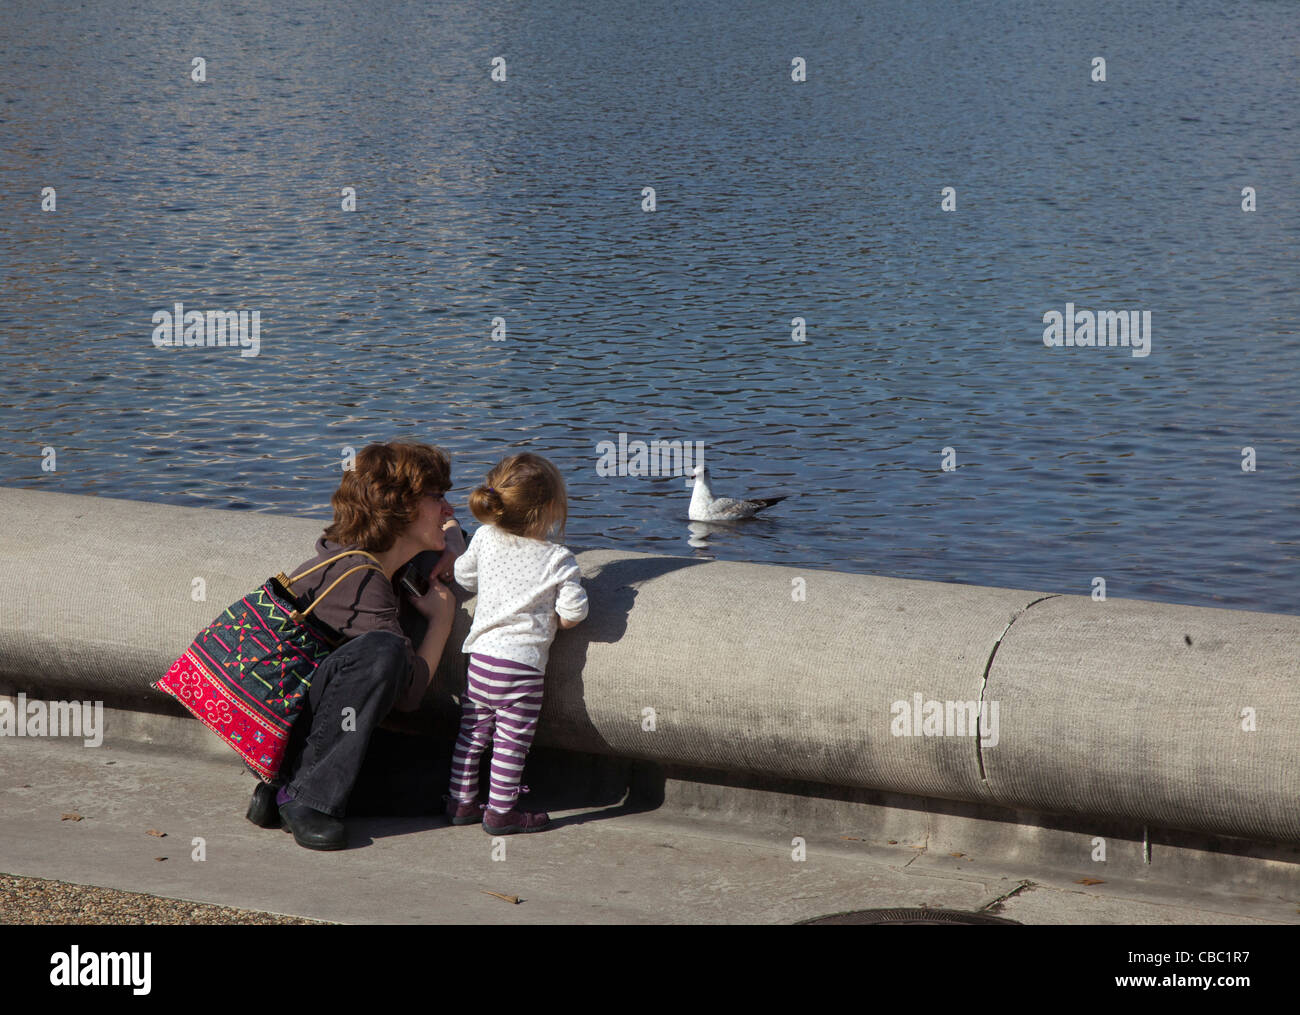 Washington, DC - A mother and daughter watch a gull floating in the reflecting pool in front of the U.S. Capitol. - Stock Image